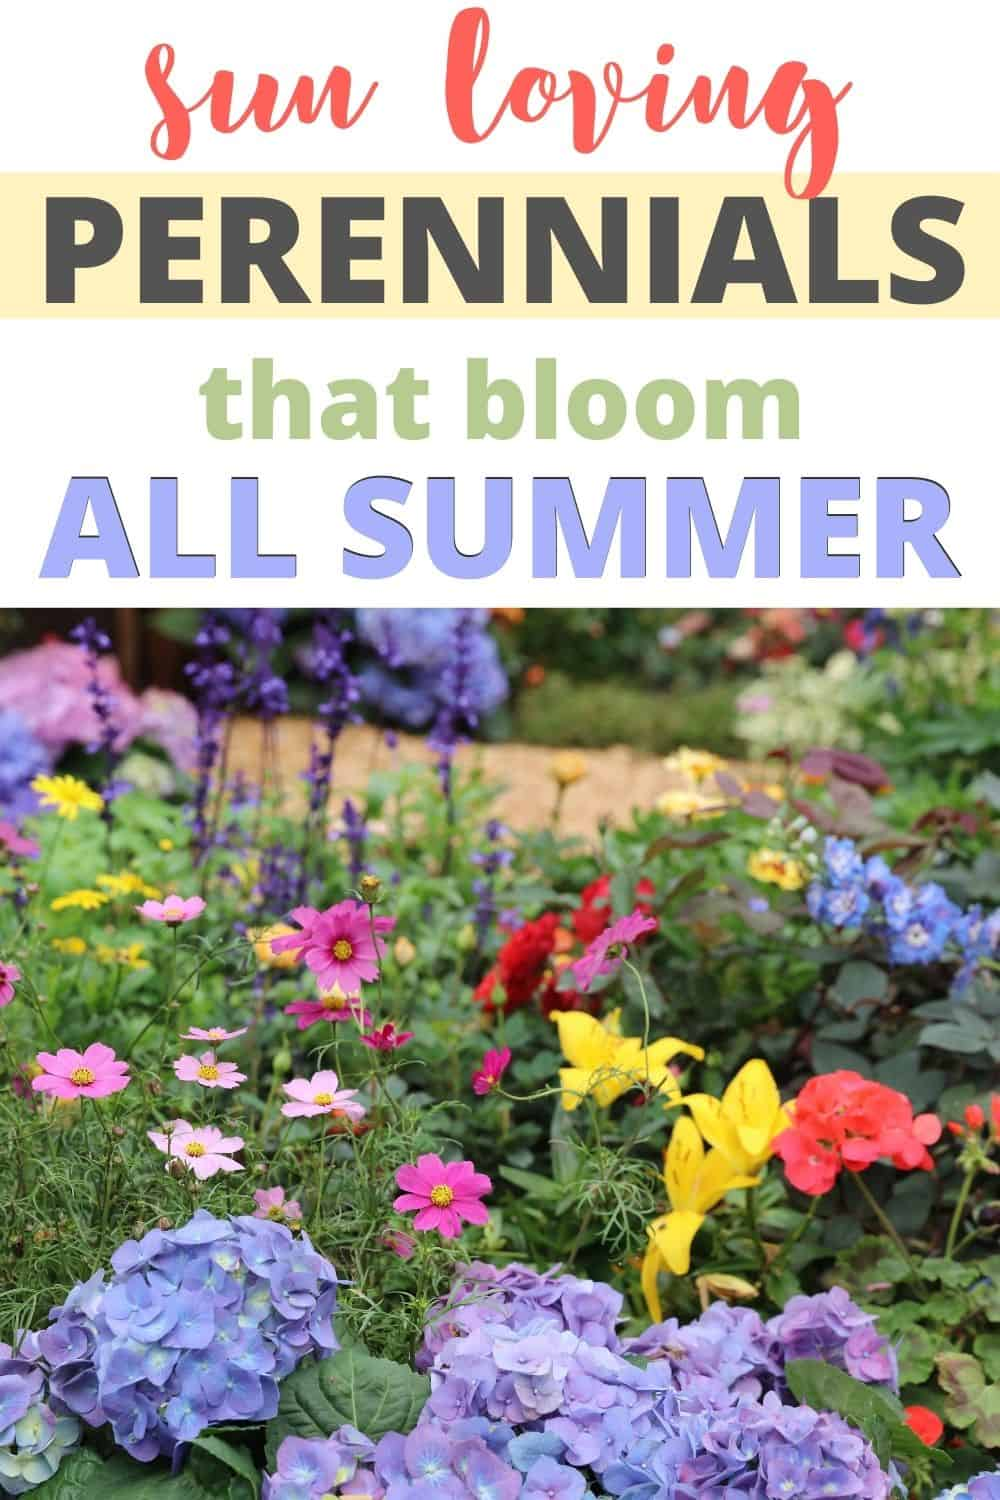 Sun loving perennials that bloom all summer